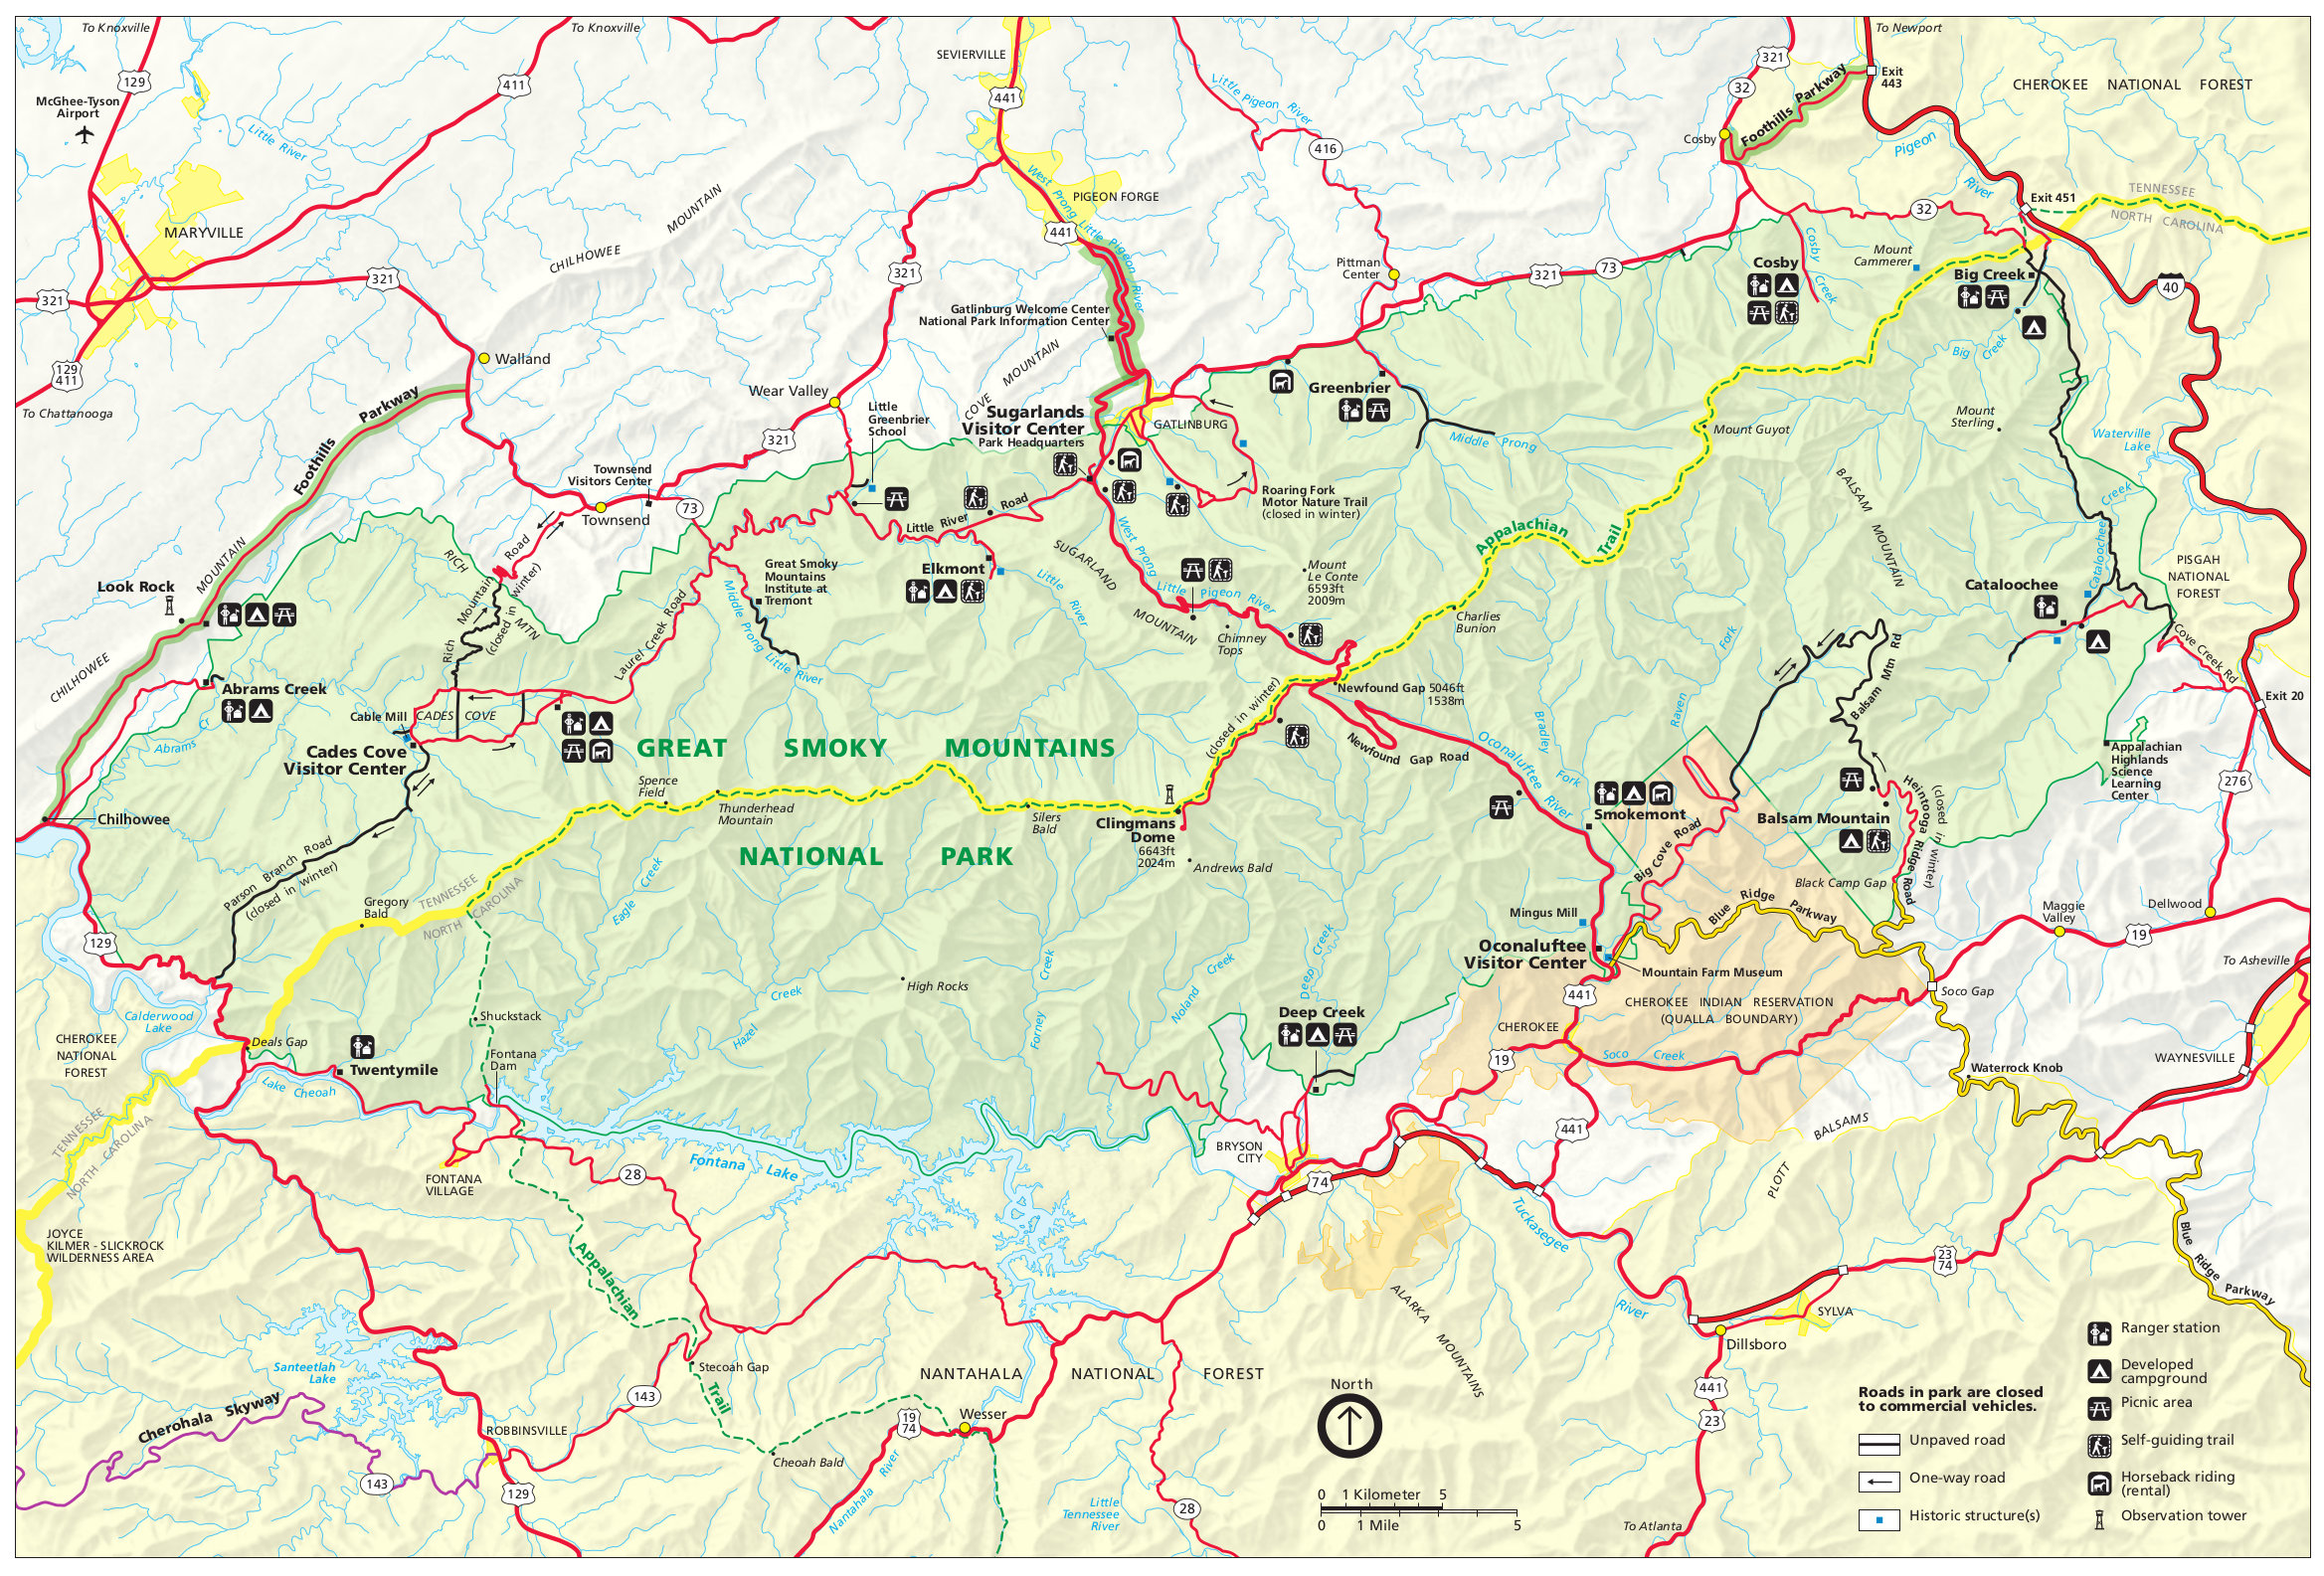 Great Smoky Mountains National Park Map Great Smoky Mountains Maps | NPMaps.  just free maps, period. Great Smoky Mountains National Park Map